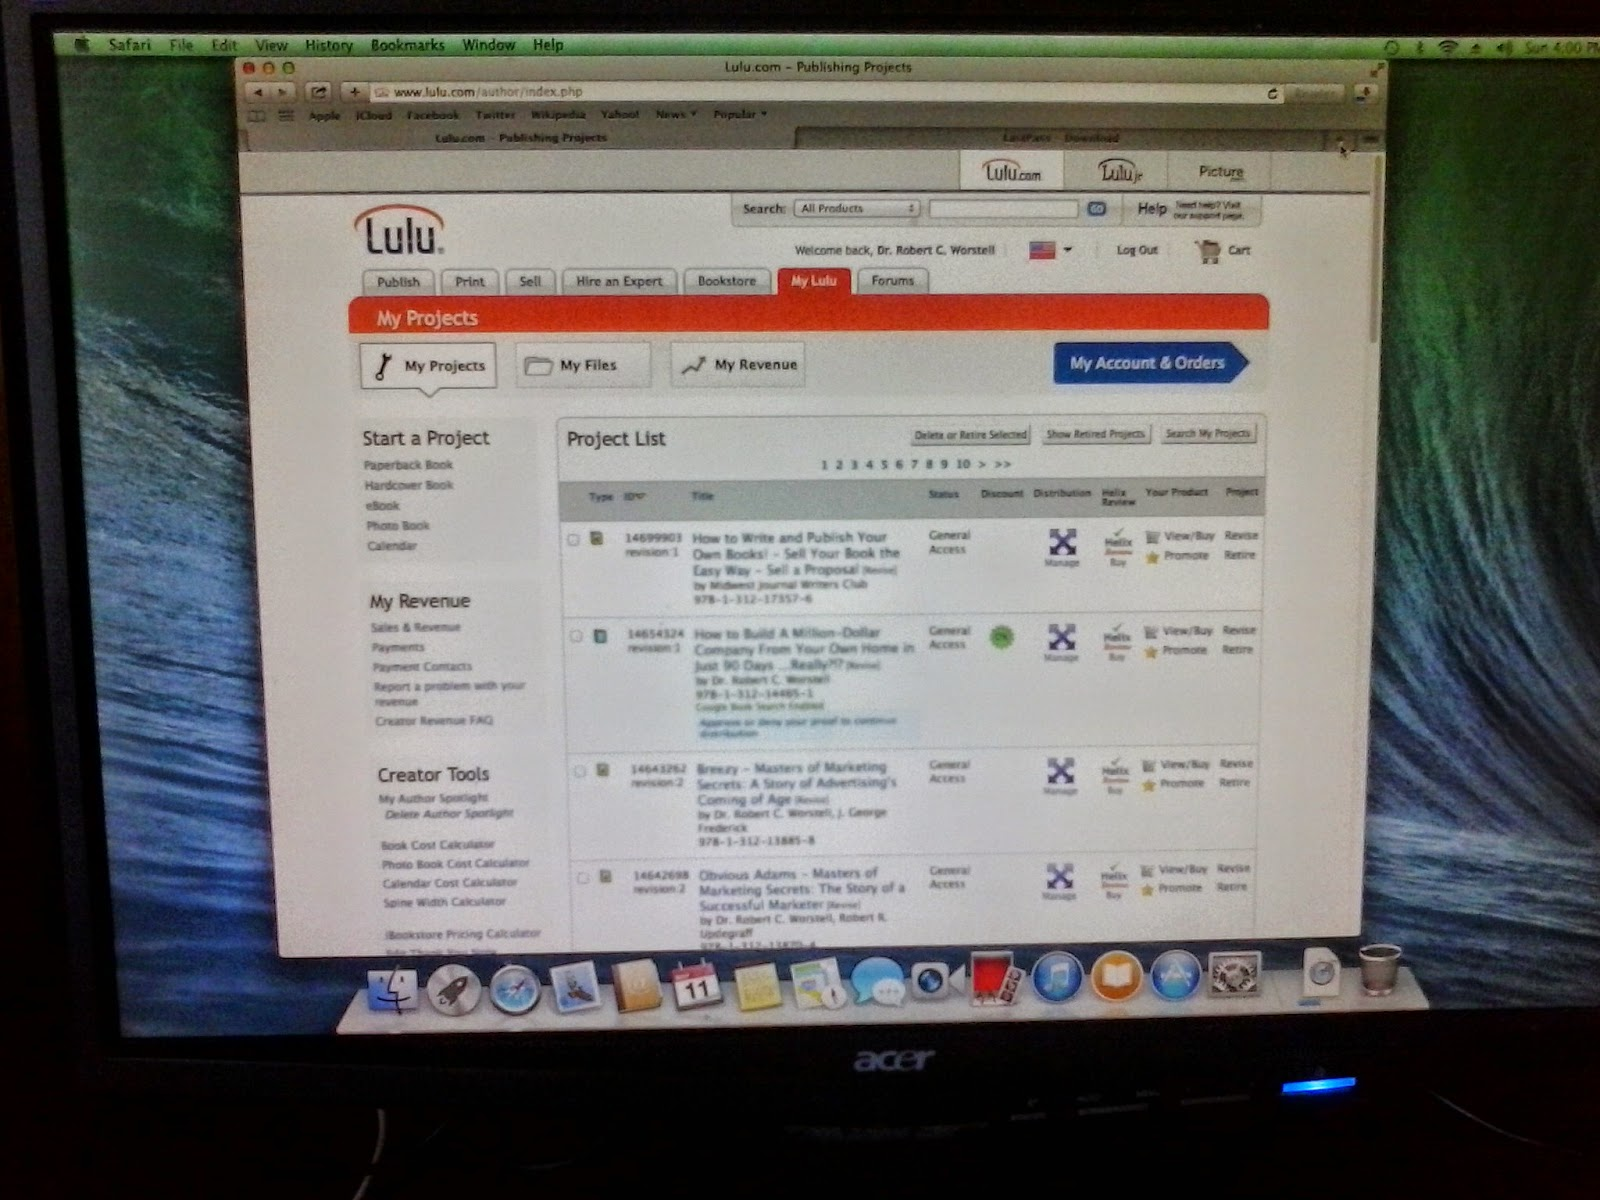 Lulu on a MAC, proving the world doesn't end when public domain isn't distributed anymore.